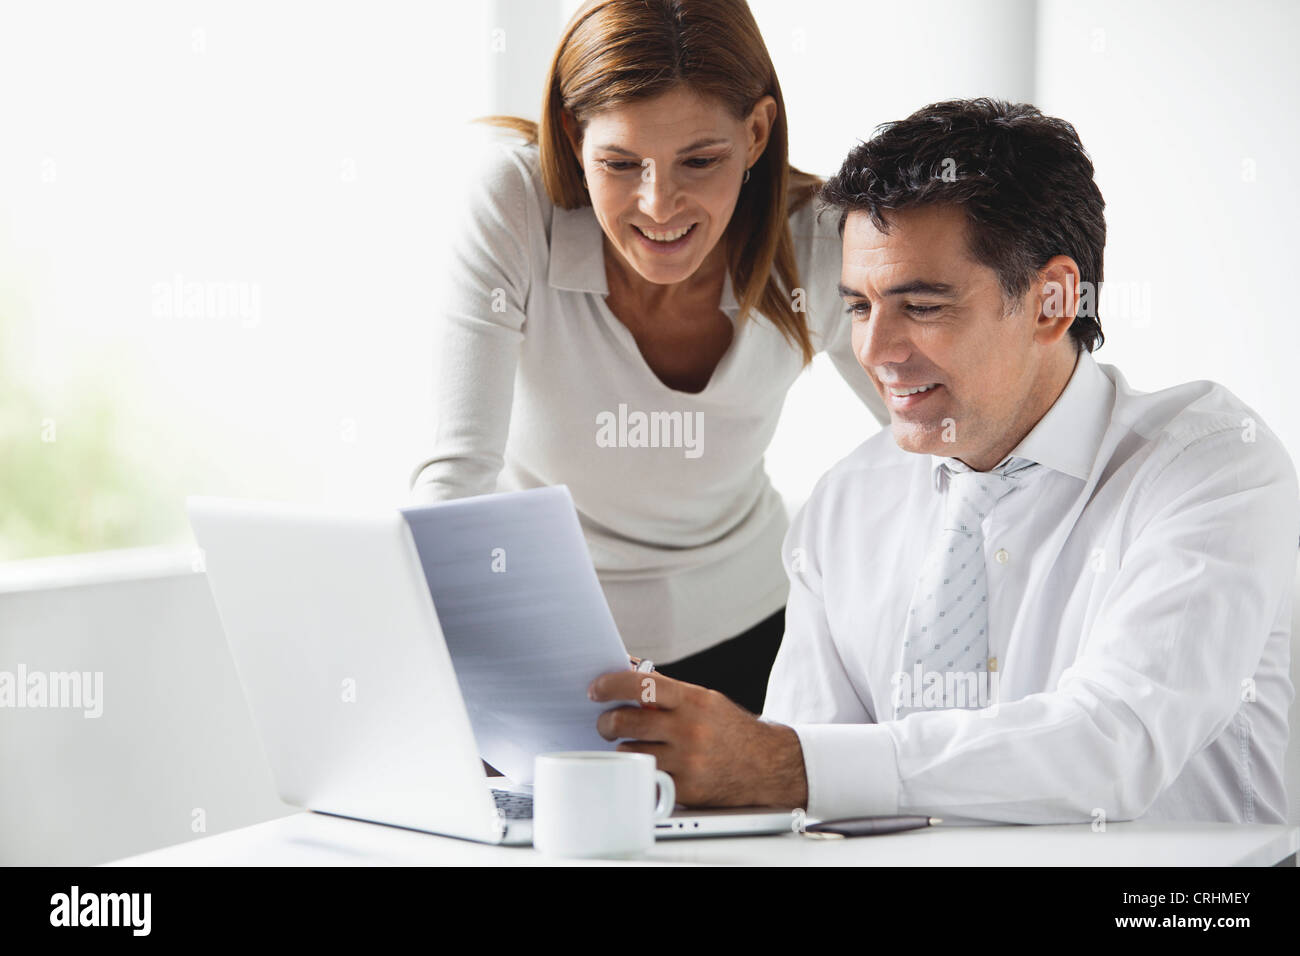 Business colleagues looking at laptop computer together - Stock Image